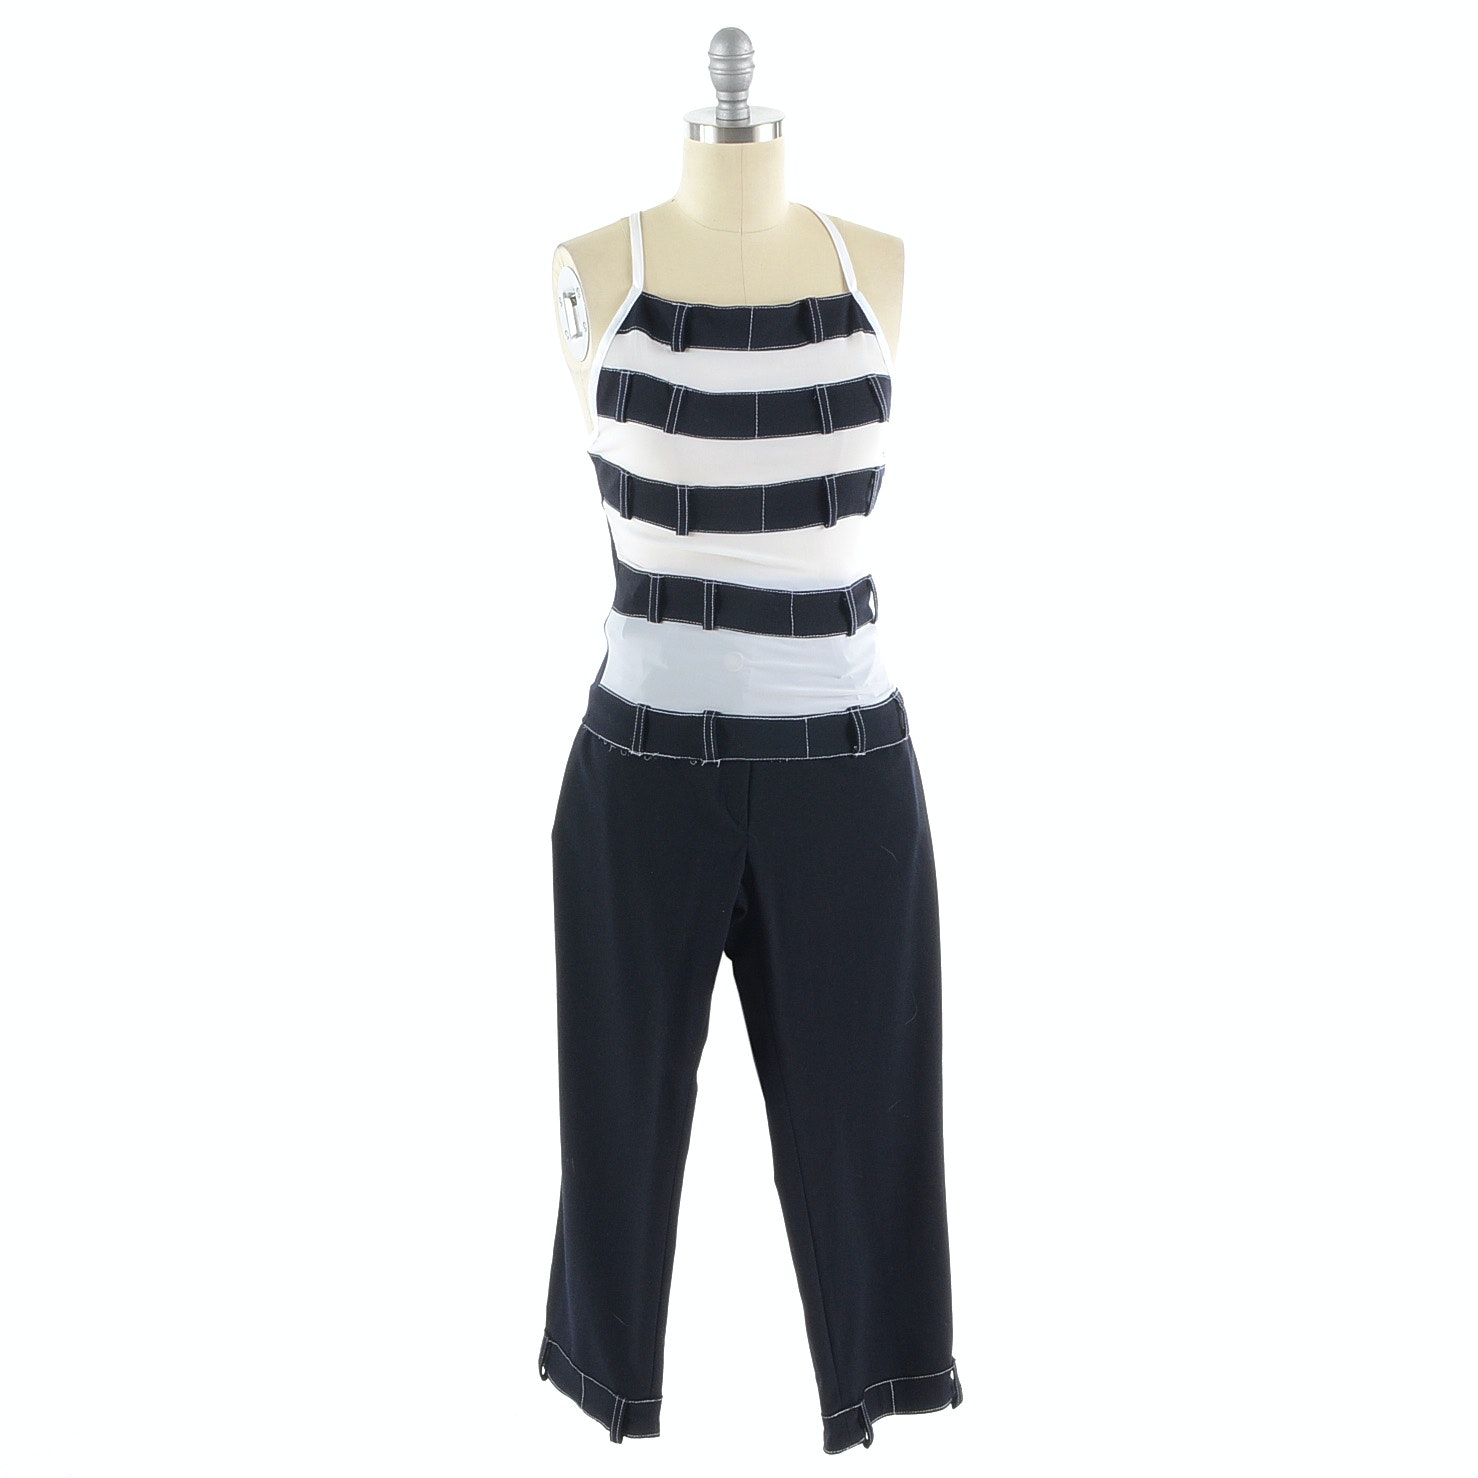 JIKI Jeans Sleeveless Top and Crop Pants in Navy Blue and White